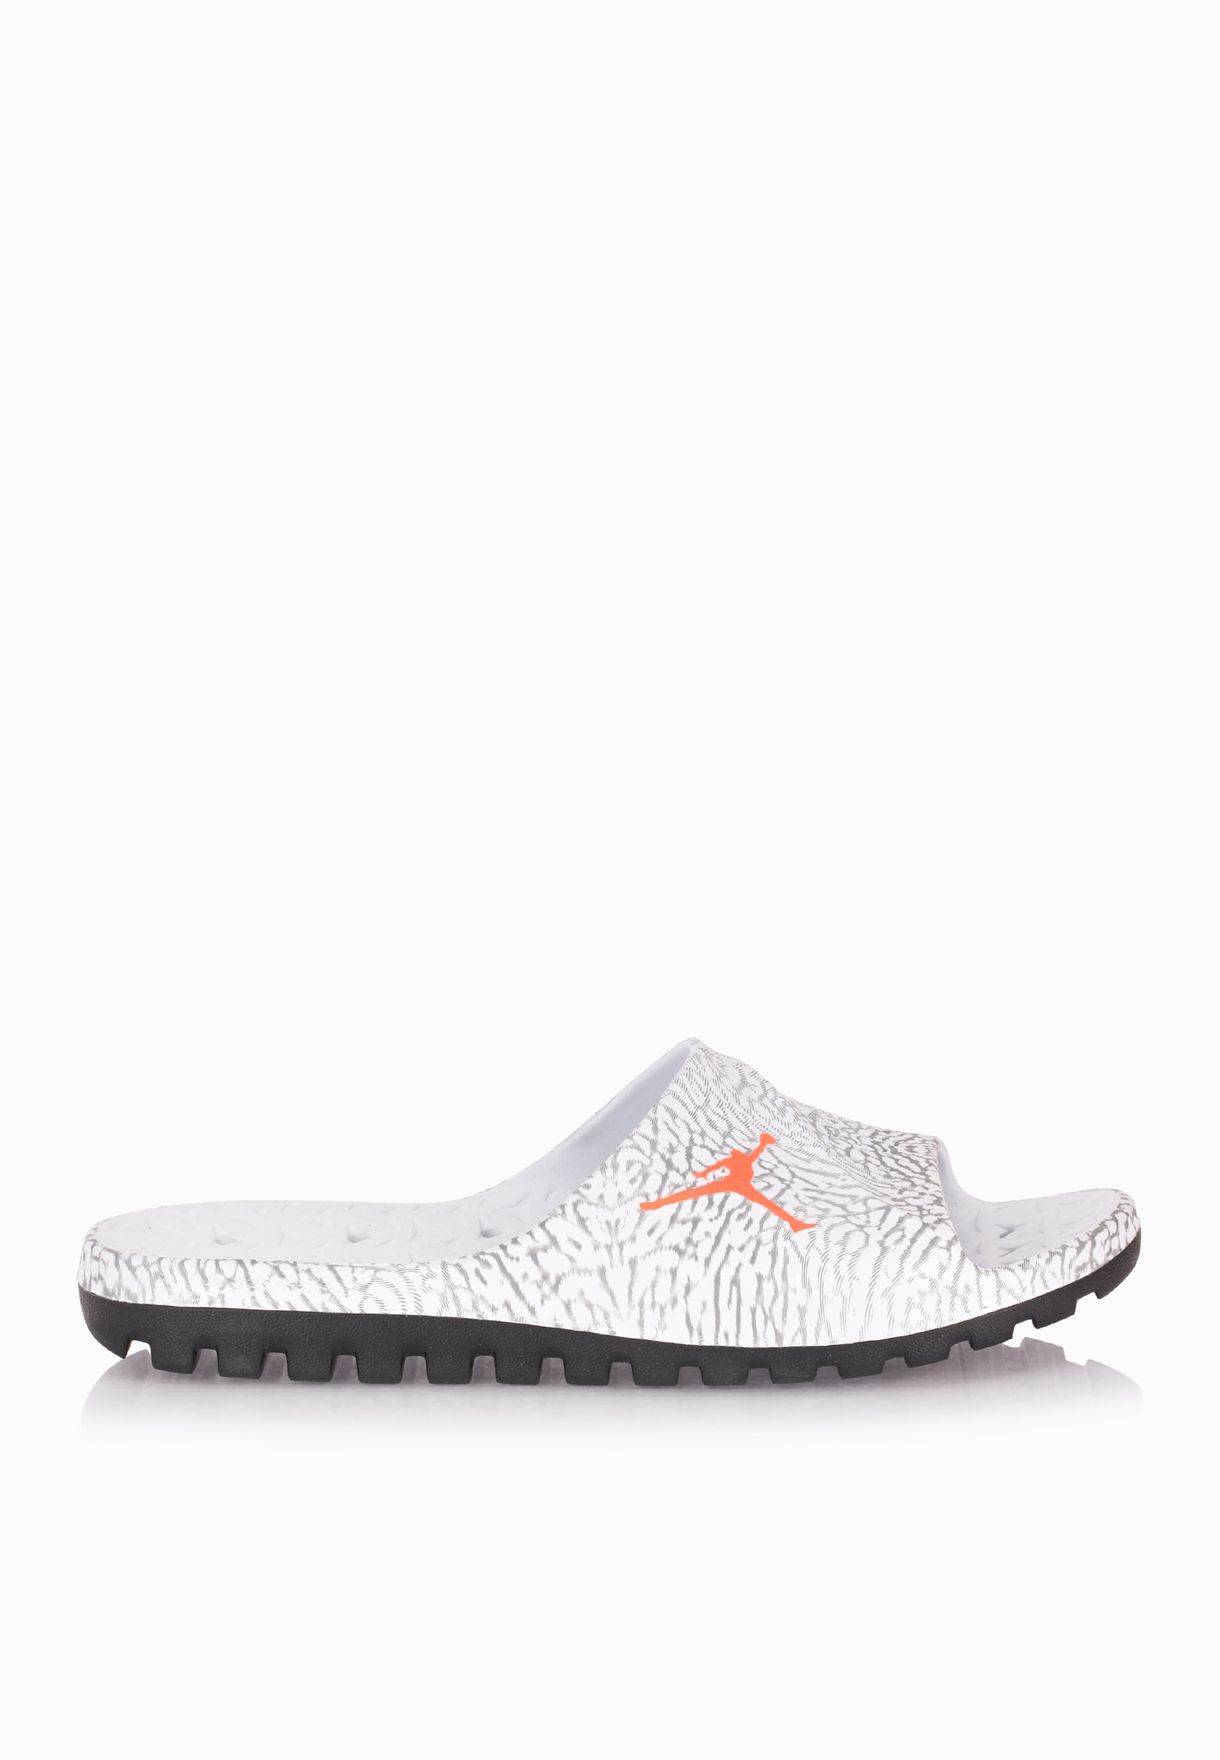 09b5eca41344 Shop Nike grey Jordan Super Fly Team Slide 842400-007 for Men in UAE ...